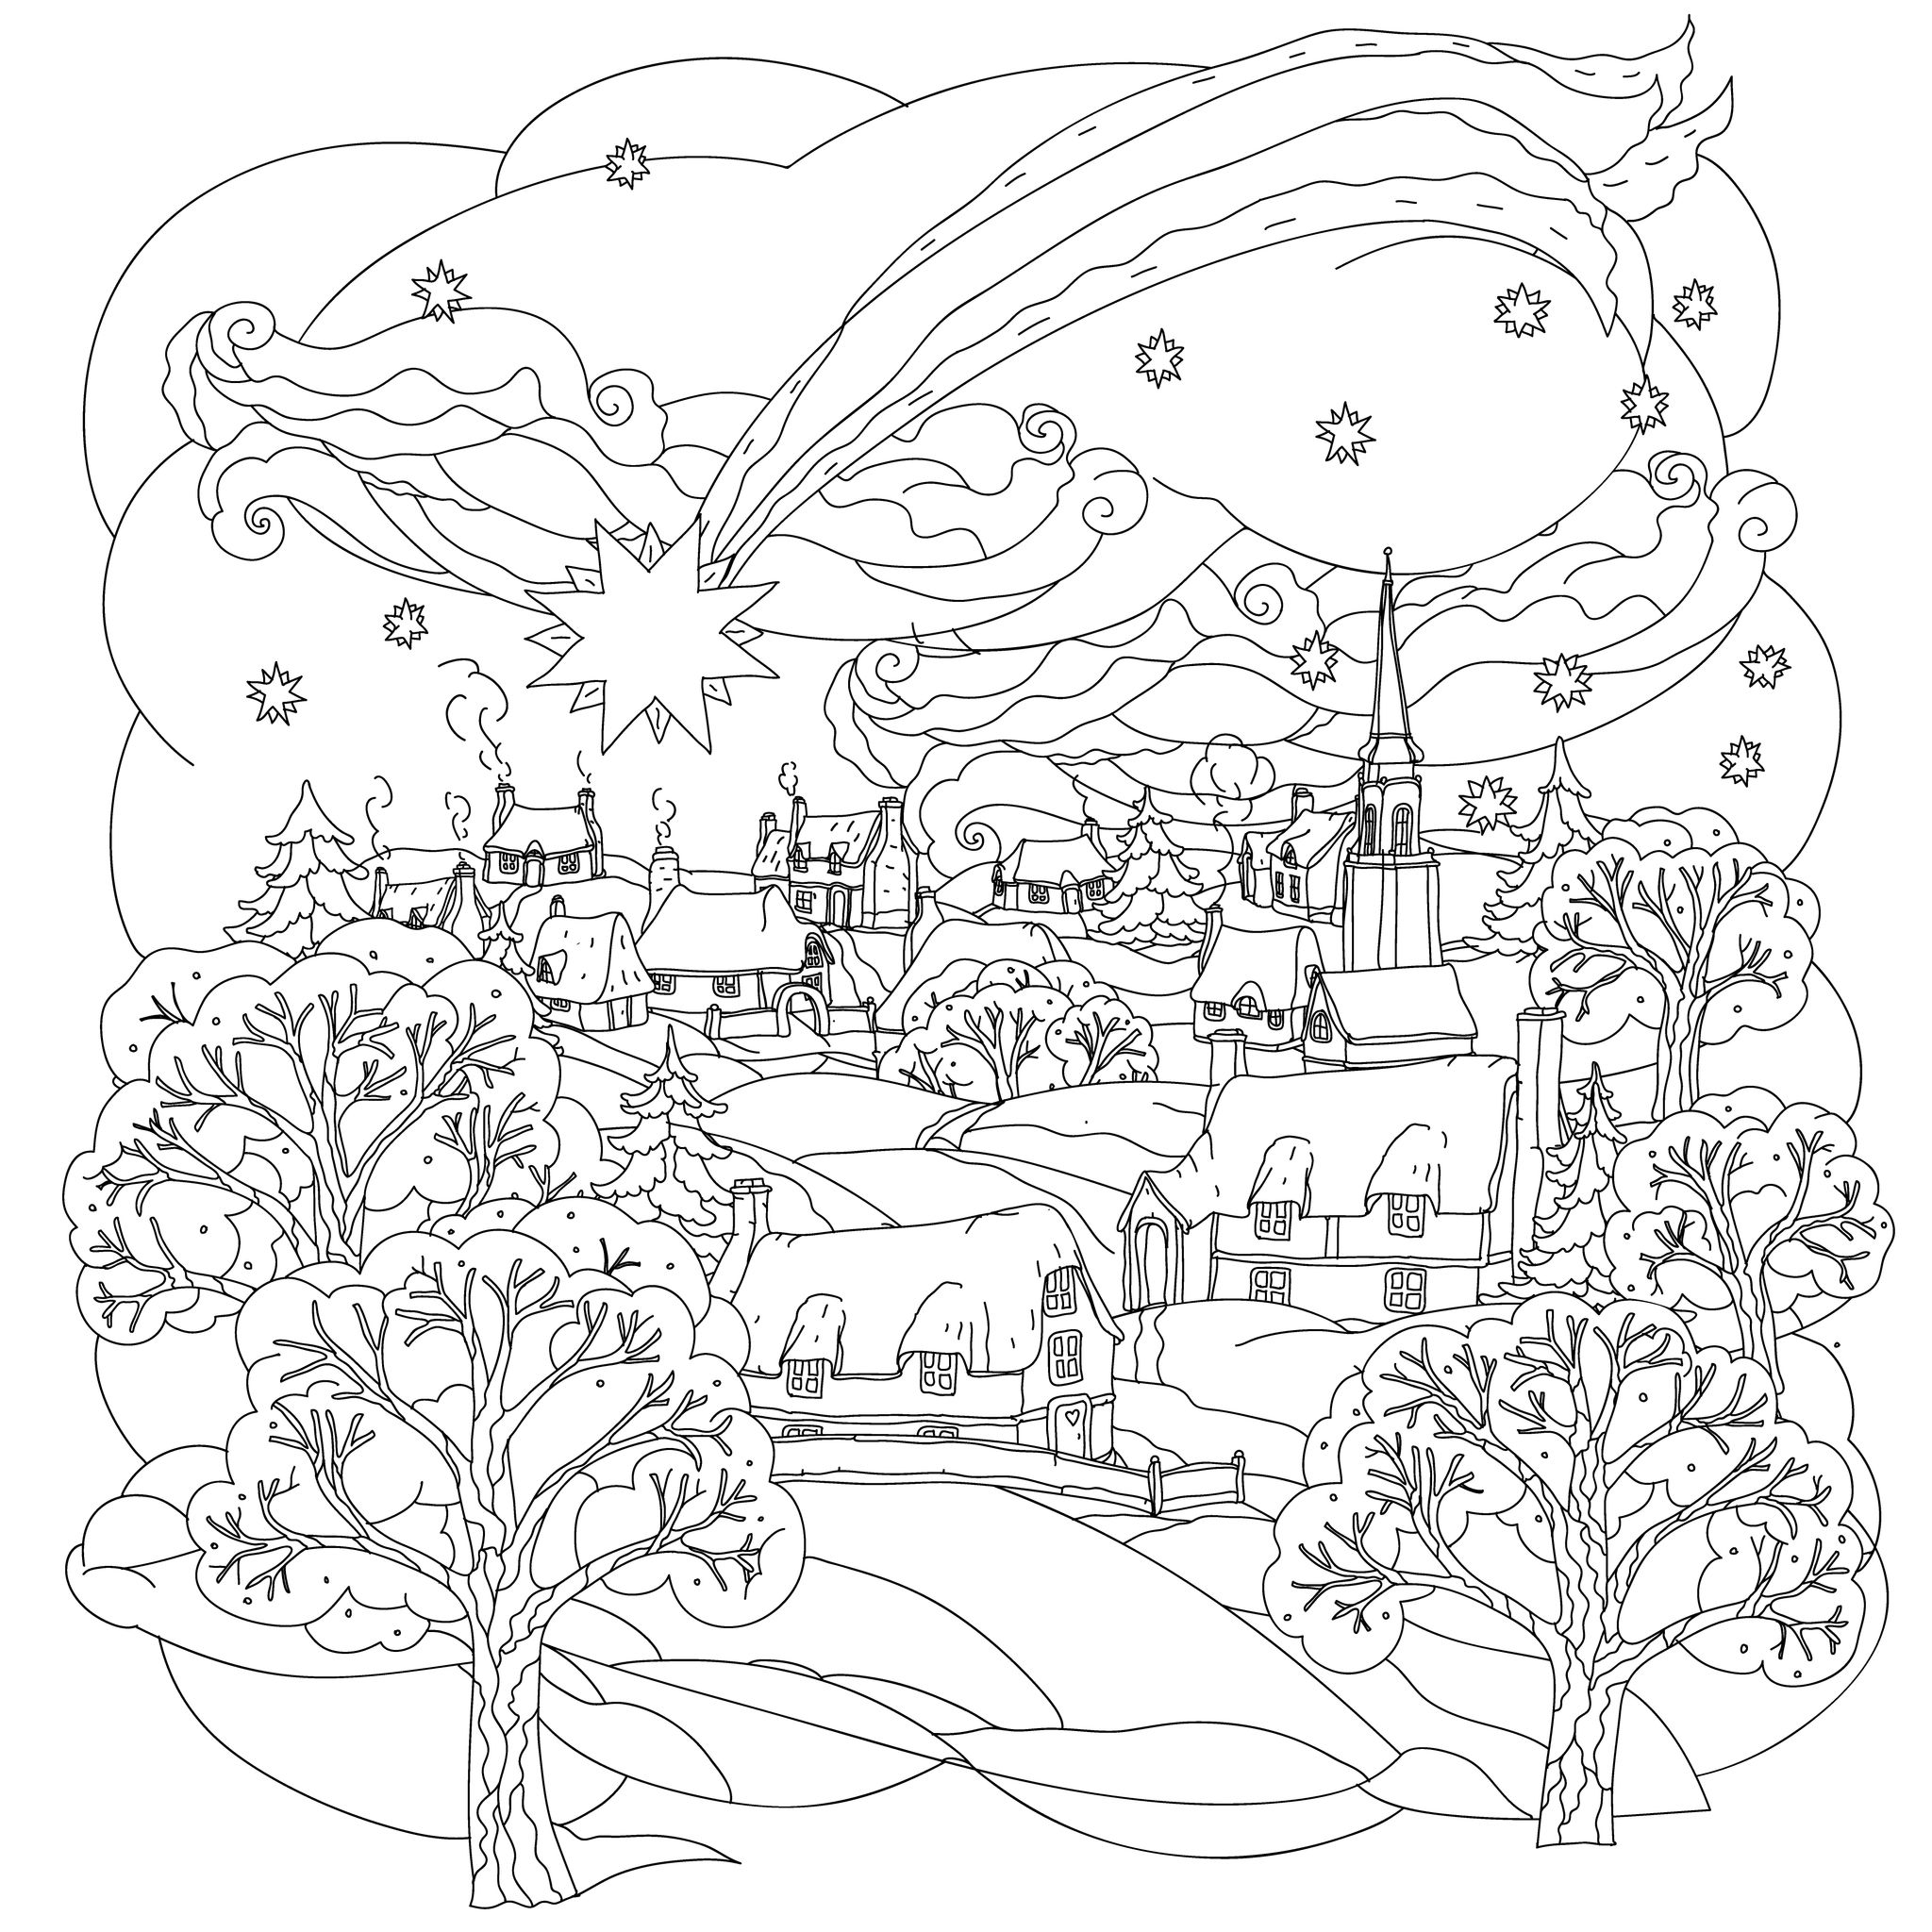 christmas star flies over winter village a beautiful and simple xmas coloring page - Christmas Coloring Pages For Adults